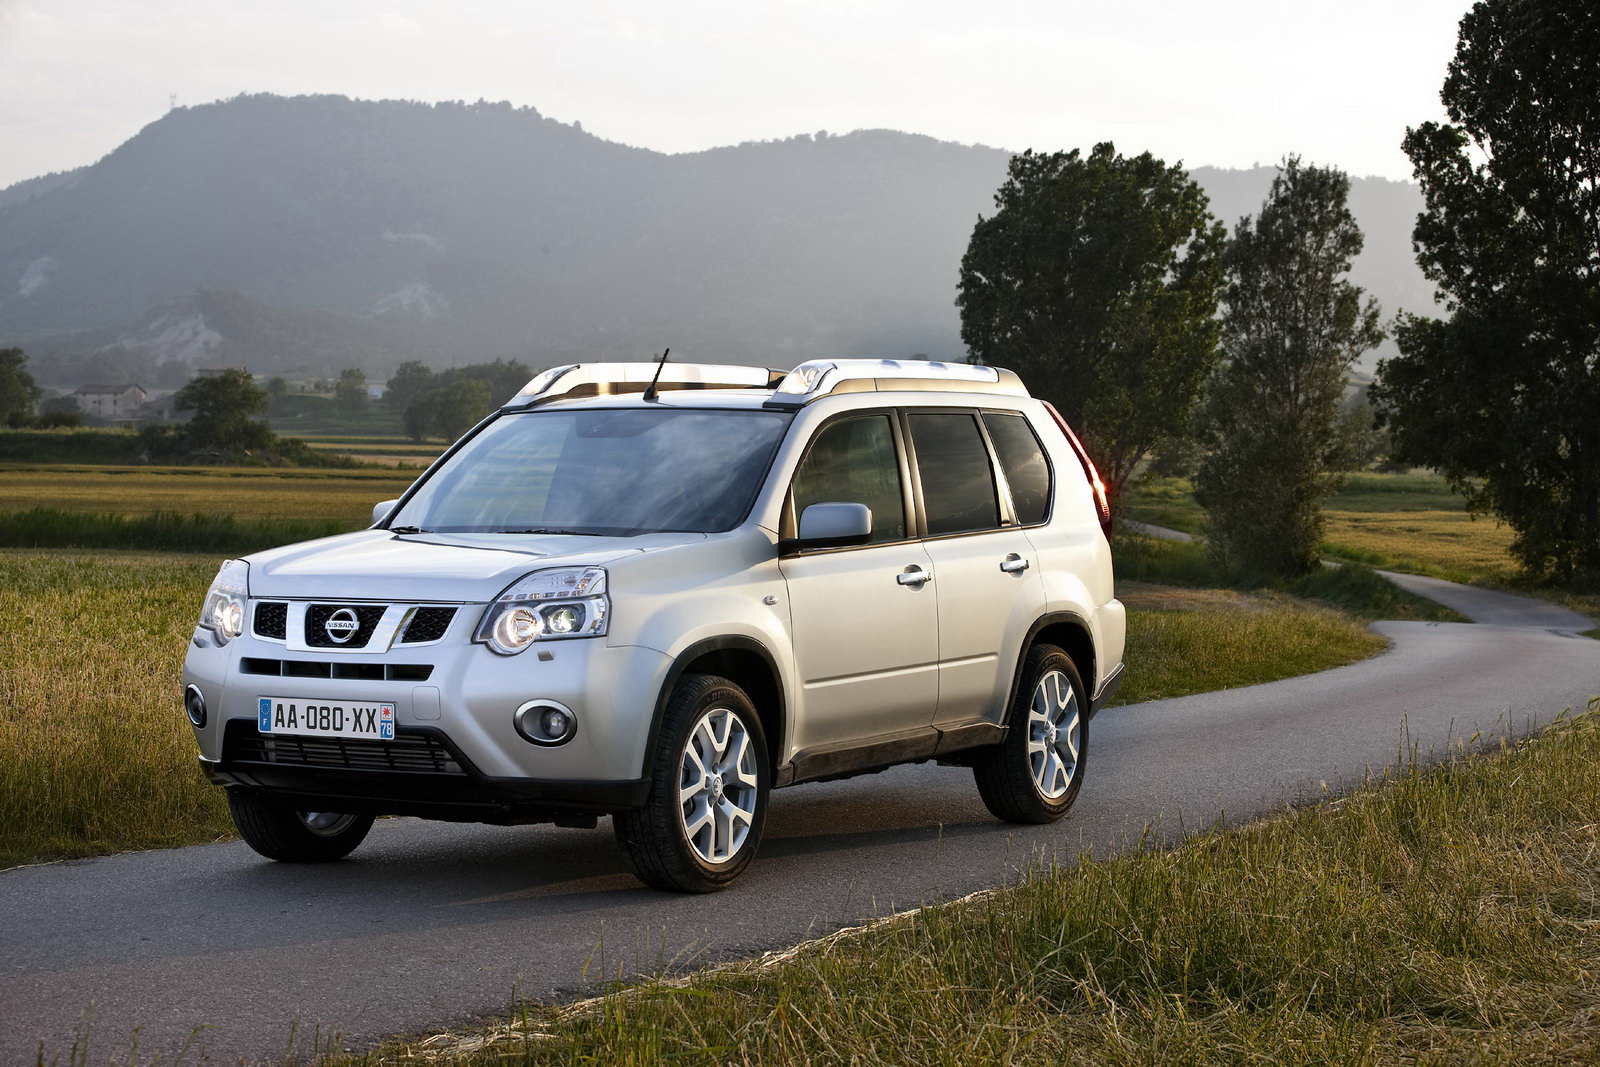 nissan x trail hd wallpapers part 4 best cars hd wallpapers. Black Bedroom Furniture Sets. Home Design Ideas